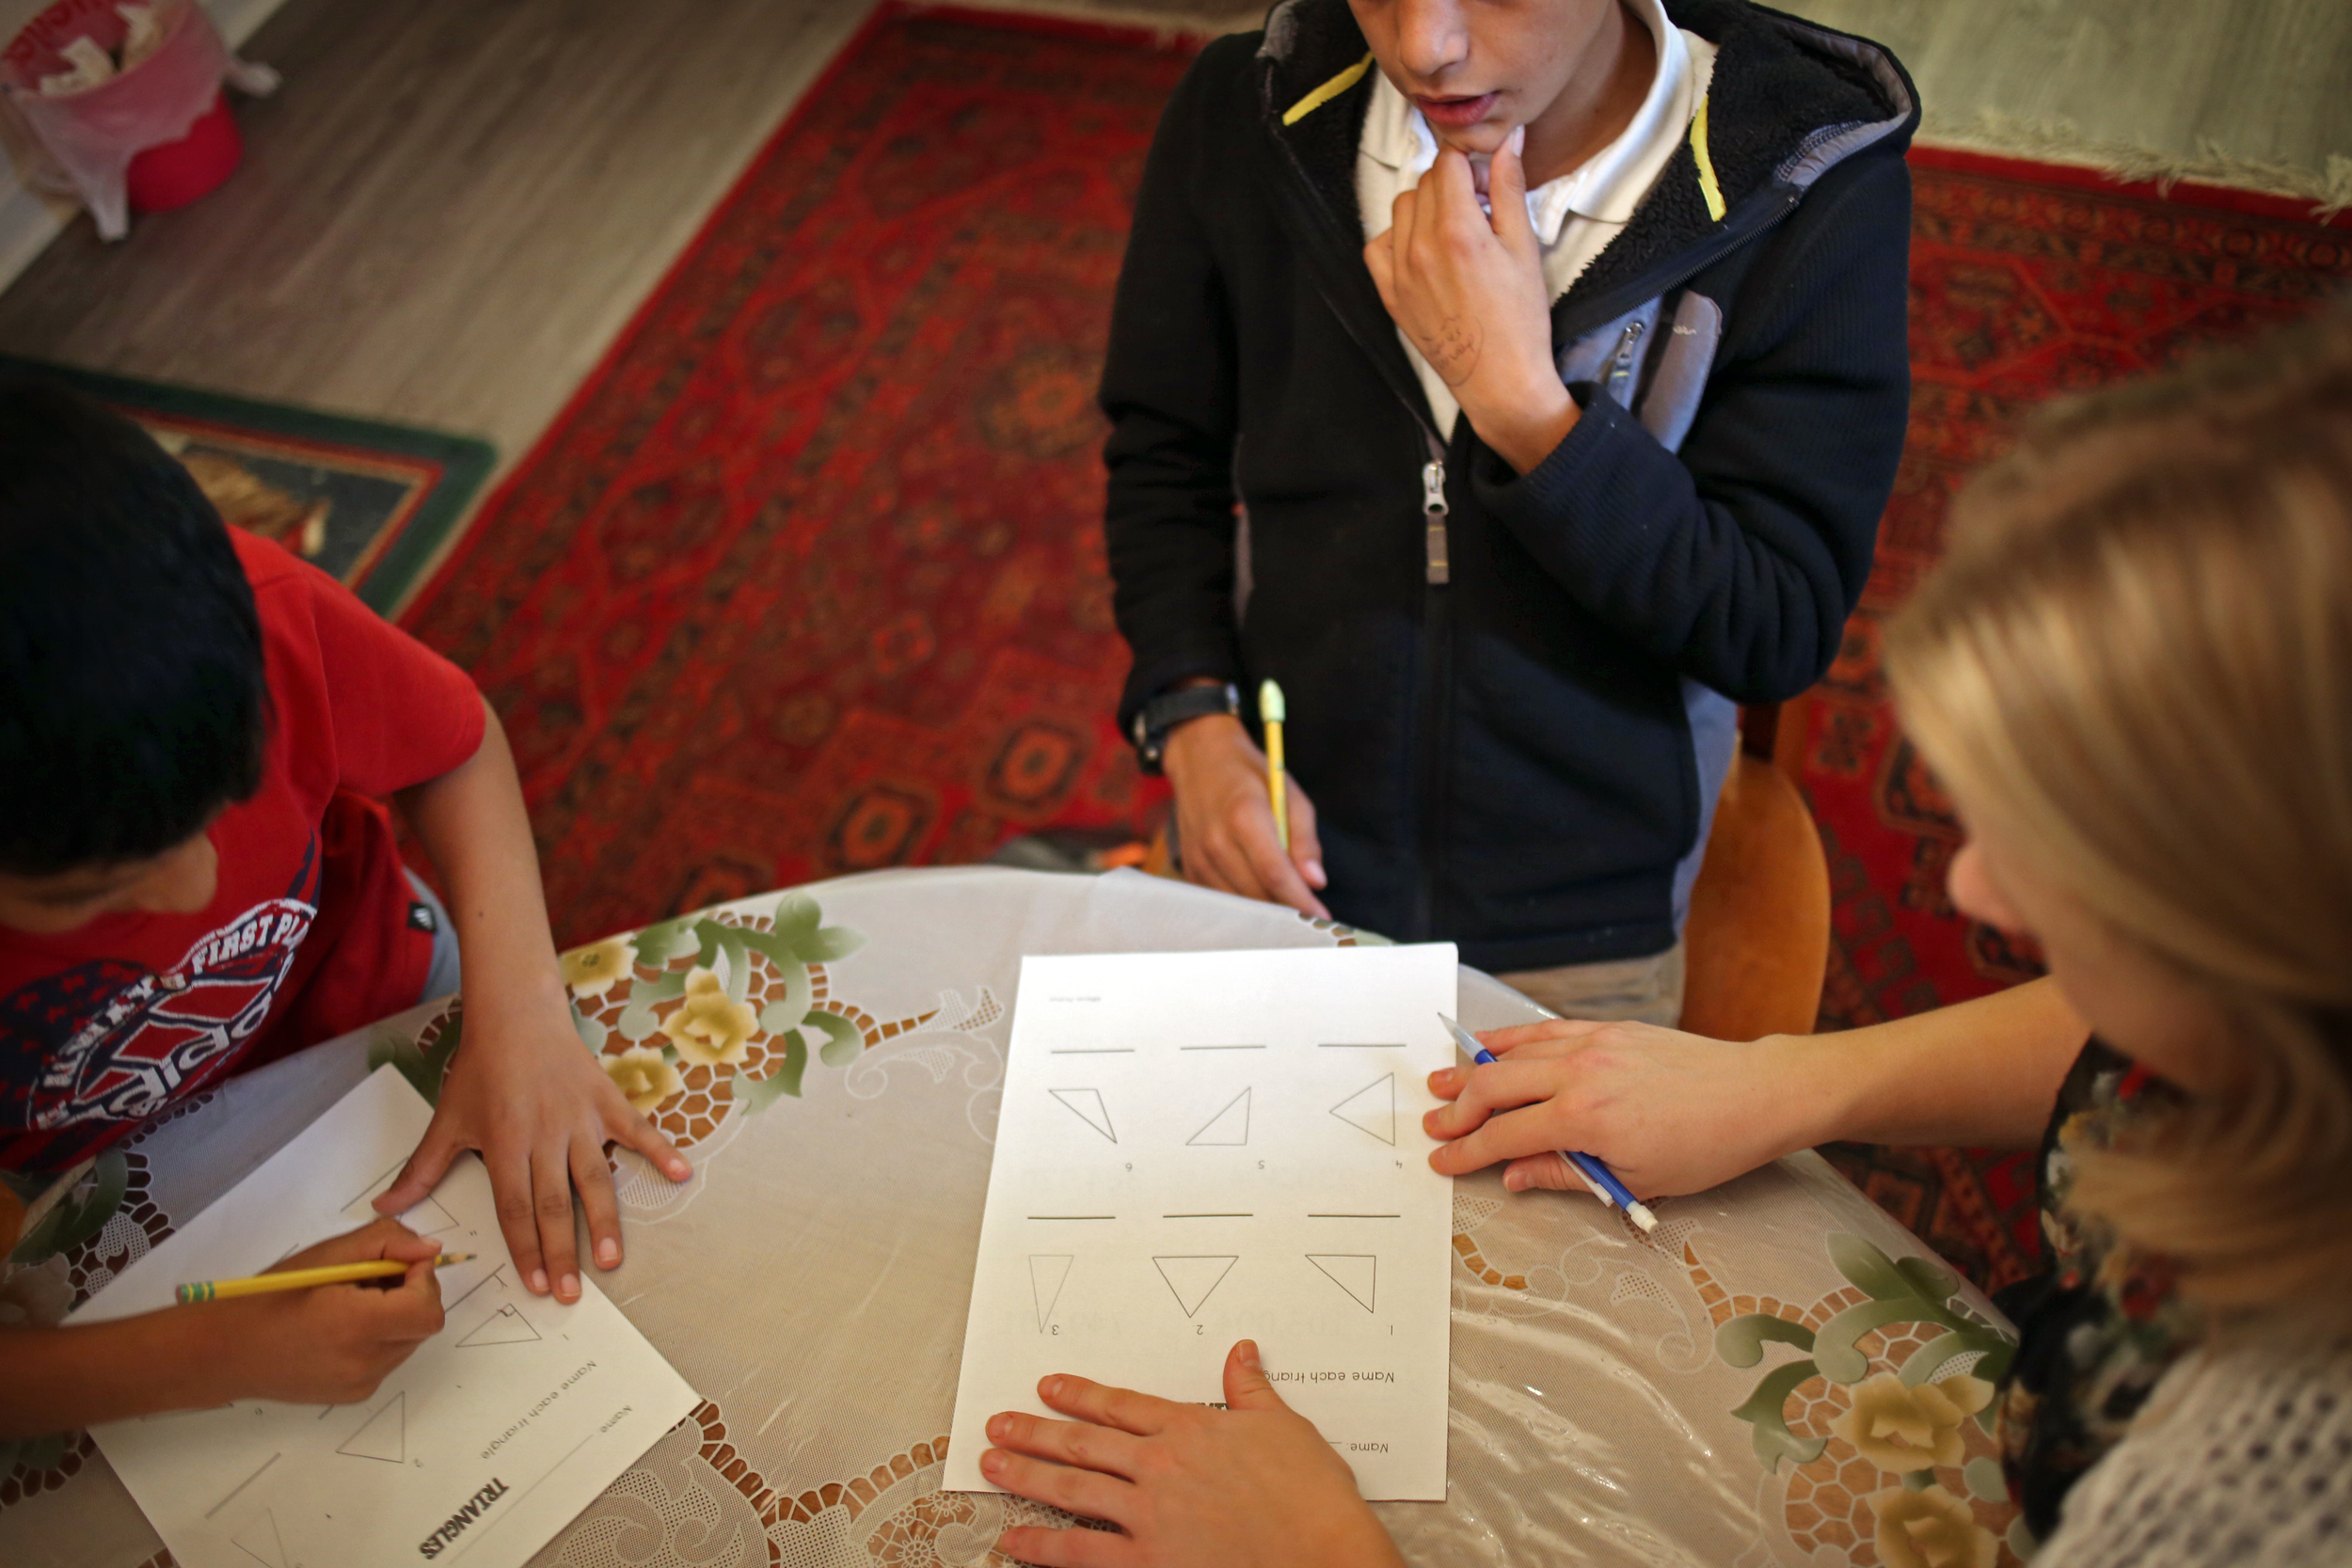 "Kawoon, left, and Janan get tutored by Central Michigan University student, Katilee Bensley at their home in Lansing, Mich. Bensley met the boys over the summer and continues to tutor them. ""When I tutored Janan at the summer reading clinic his independent reading level increased from a 6th grade level to an 8th grade level…Janan has a drive to do well in school and has told me his dream is to be a doctor one day."" said Bensley. Bensley also tutors Khatera and her younger brothers. ""When I started tutoring them in Lansing it started with just tutoring Janan. Then Khatera joined in, eventually I had all the kids around the table wanting me to teach them…It makes me so happy to see how much love and passion they have to learn,"" said Bensley."